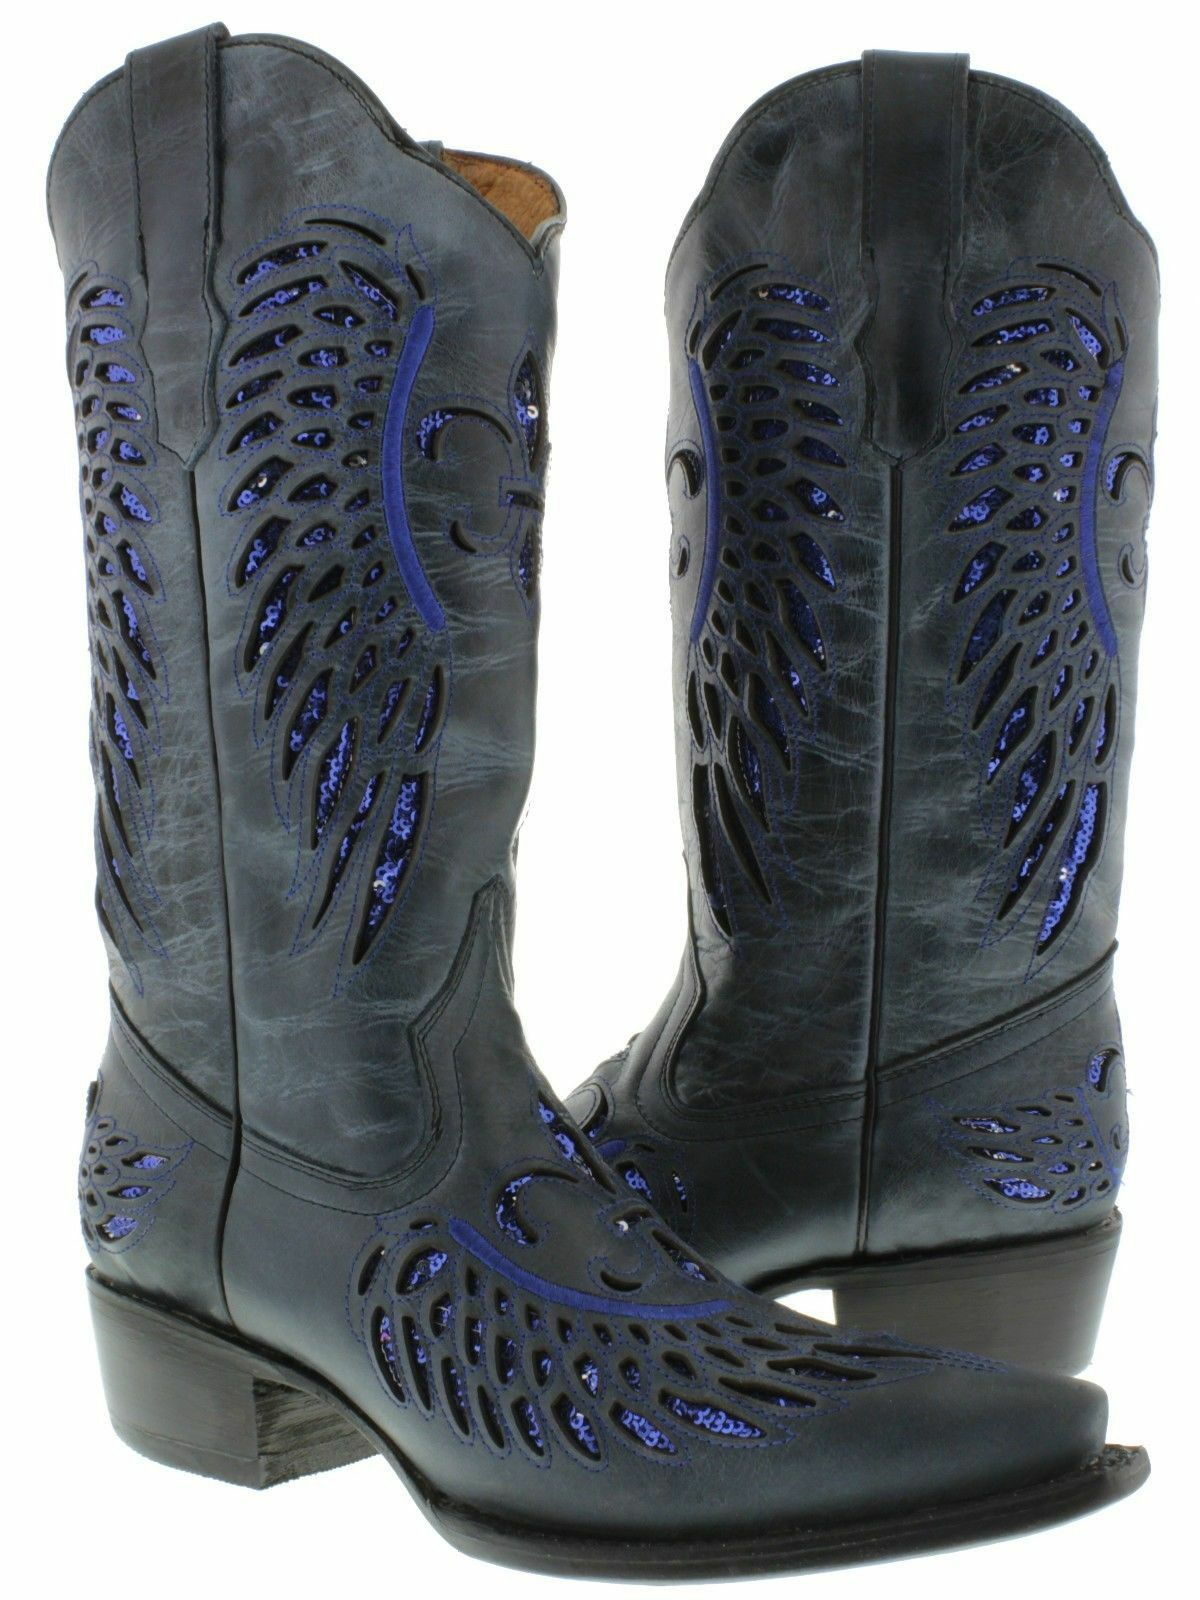 Women's bluee Flower Inlay Sequins Leather Cowboy Rodeo Western Boots Snip Toe